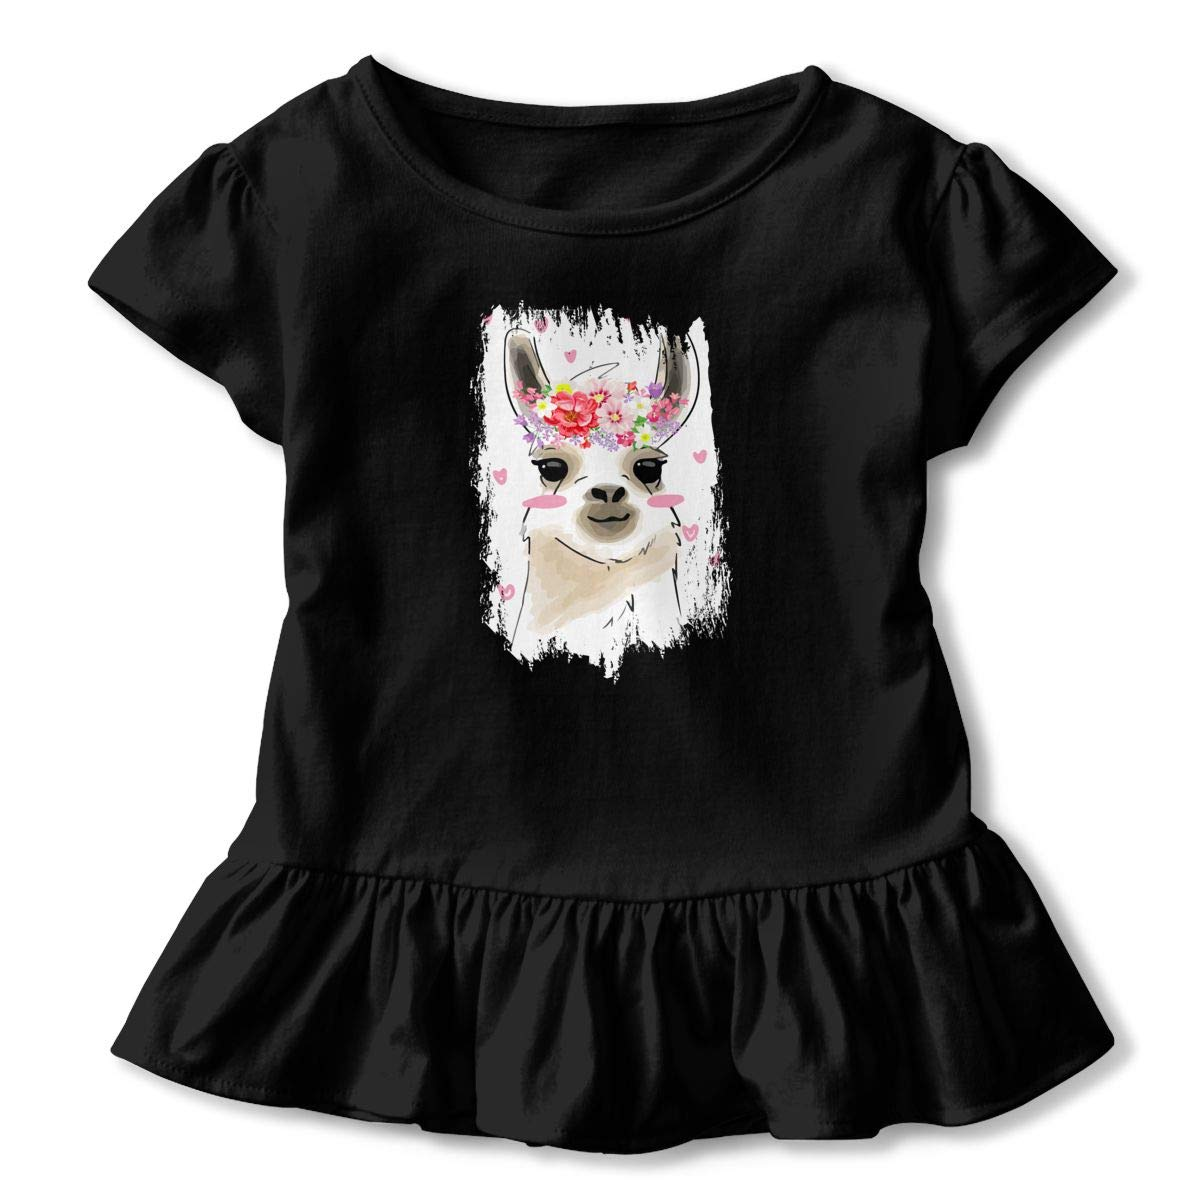 Clarissa Bertha Bahama Llama Flower Toddler Baby Girls Short Sleeve Ruffle T-Shirt